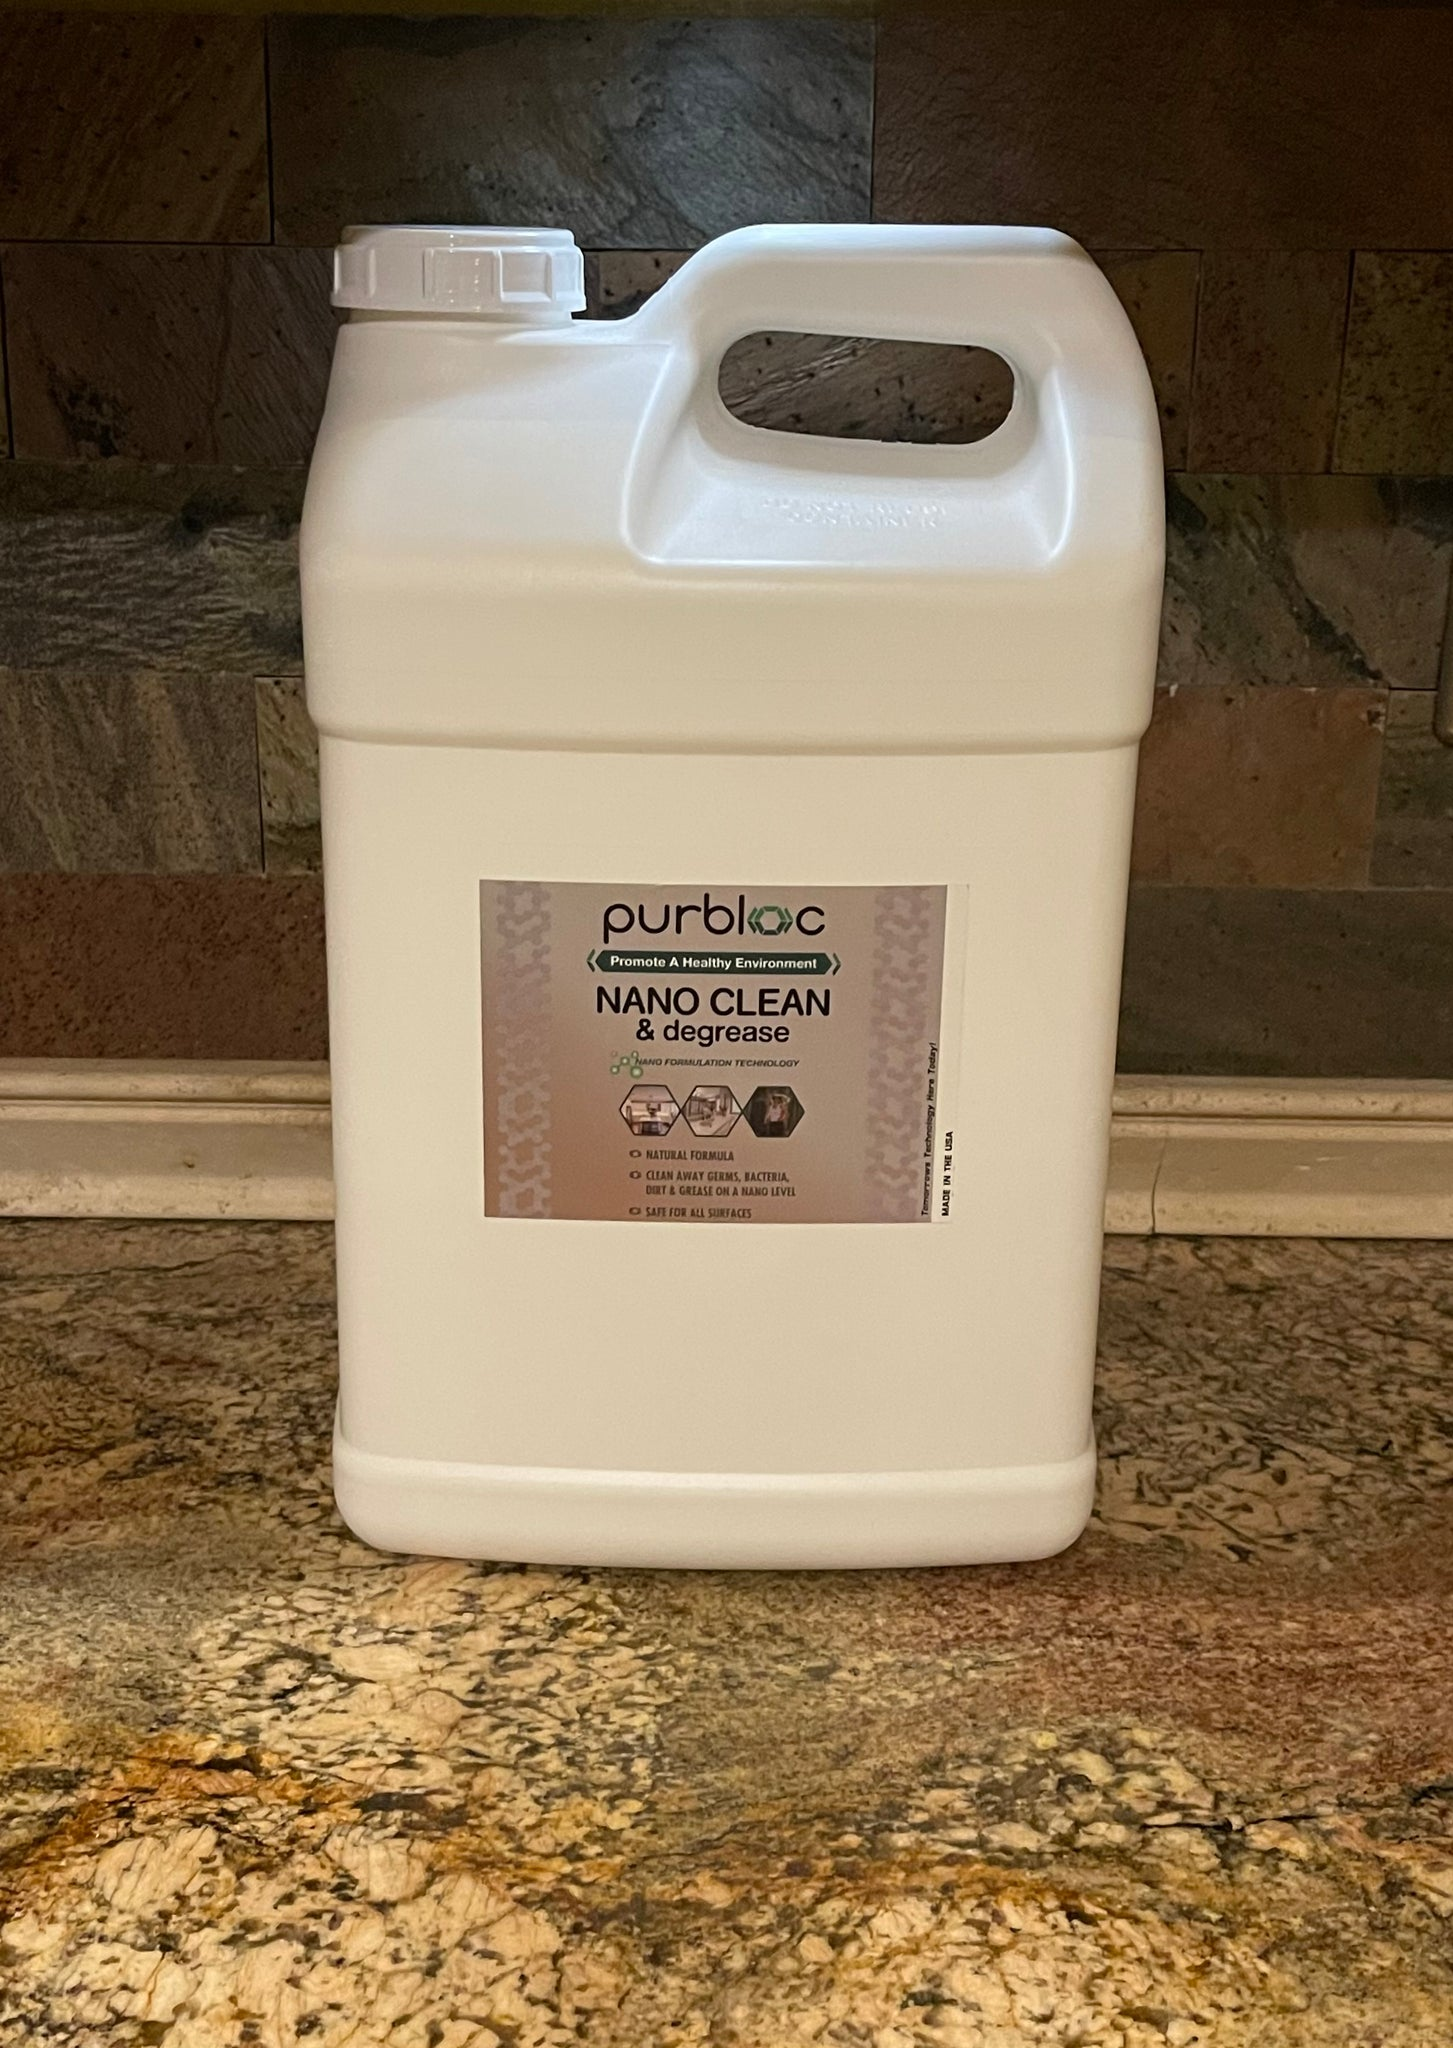 NANO CLEAN & degrease RTU (2.5 Gallon Refill)